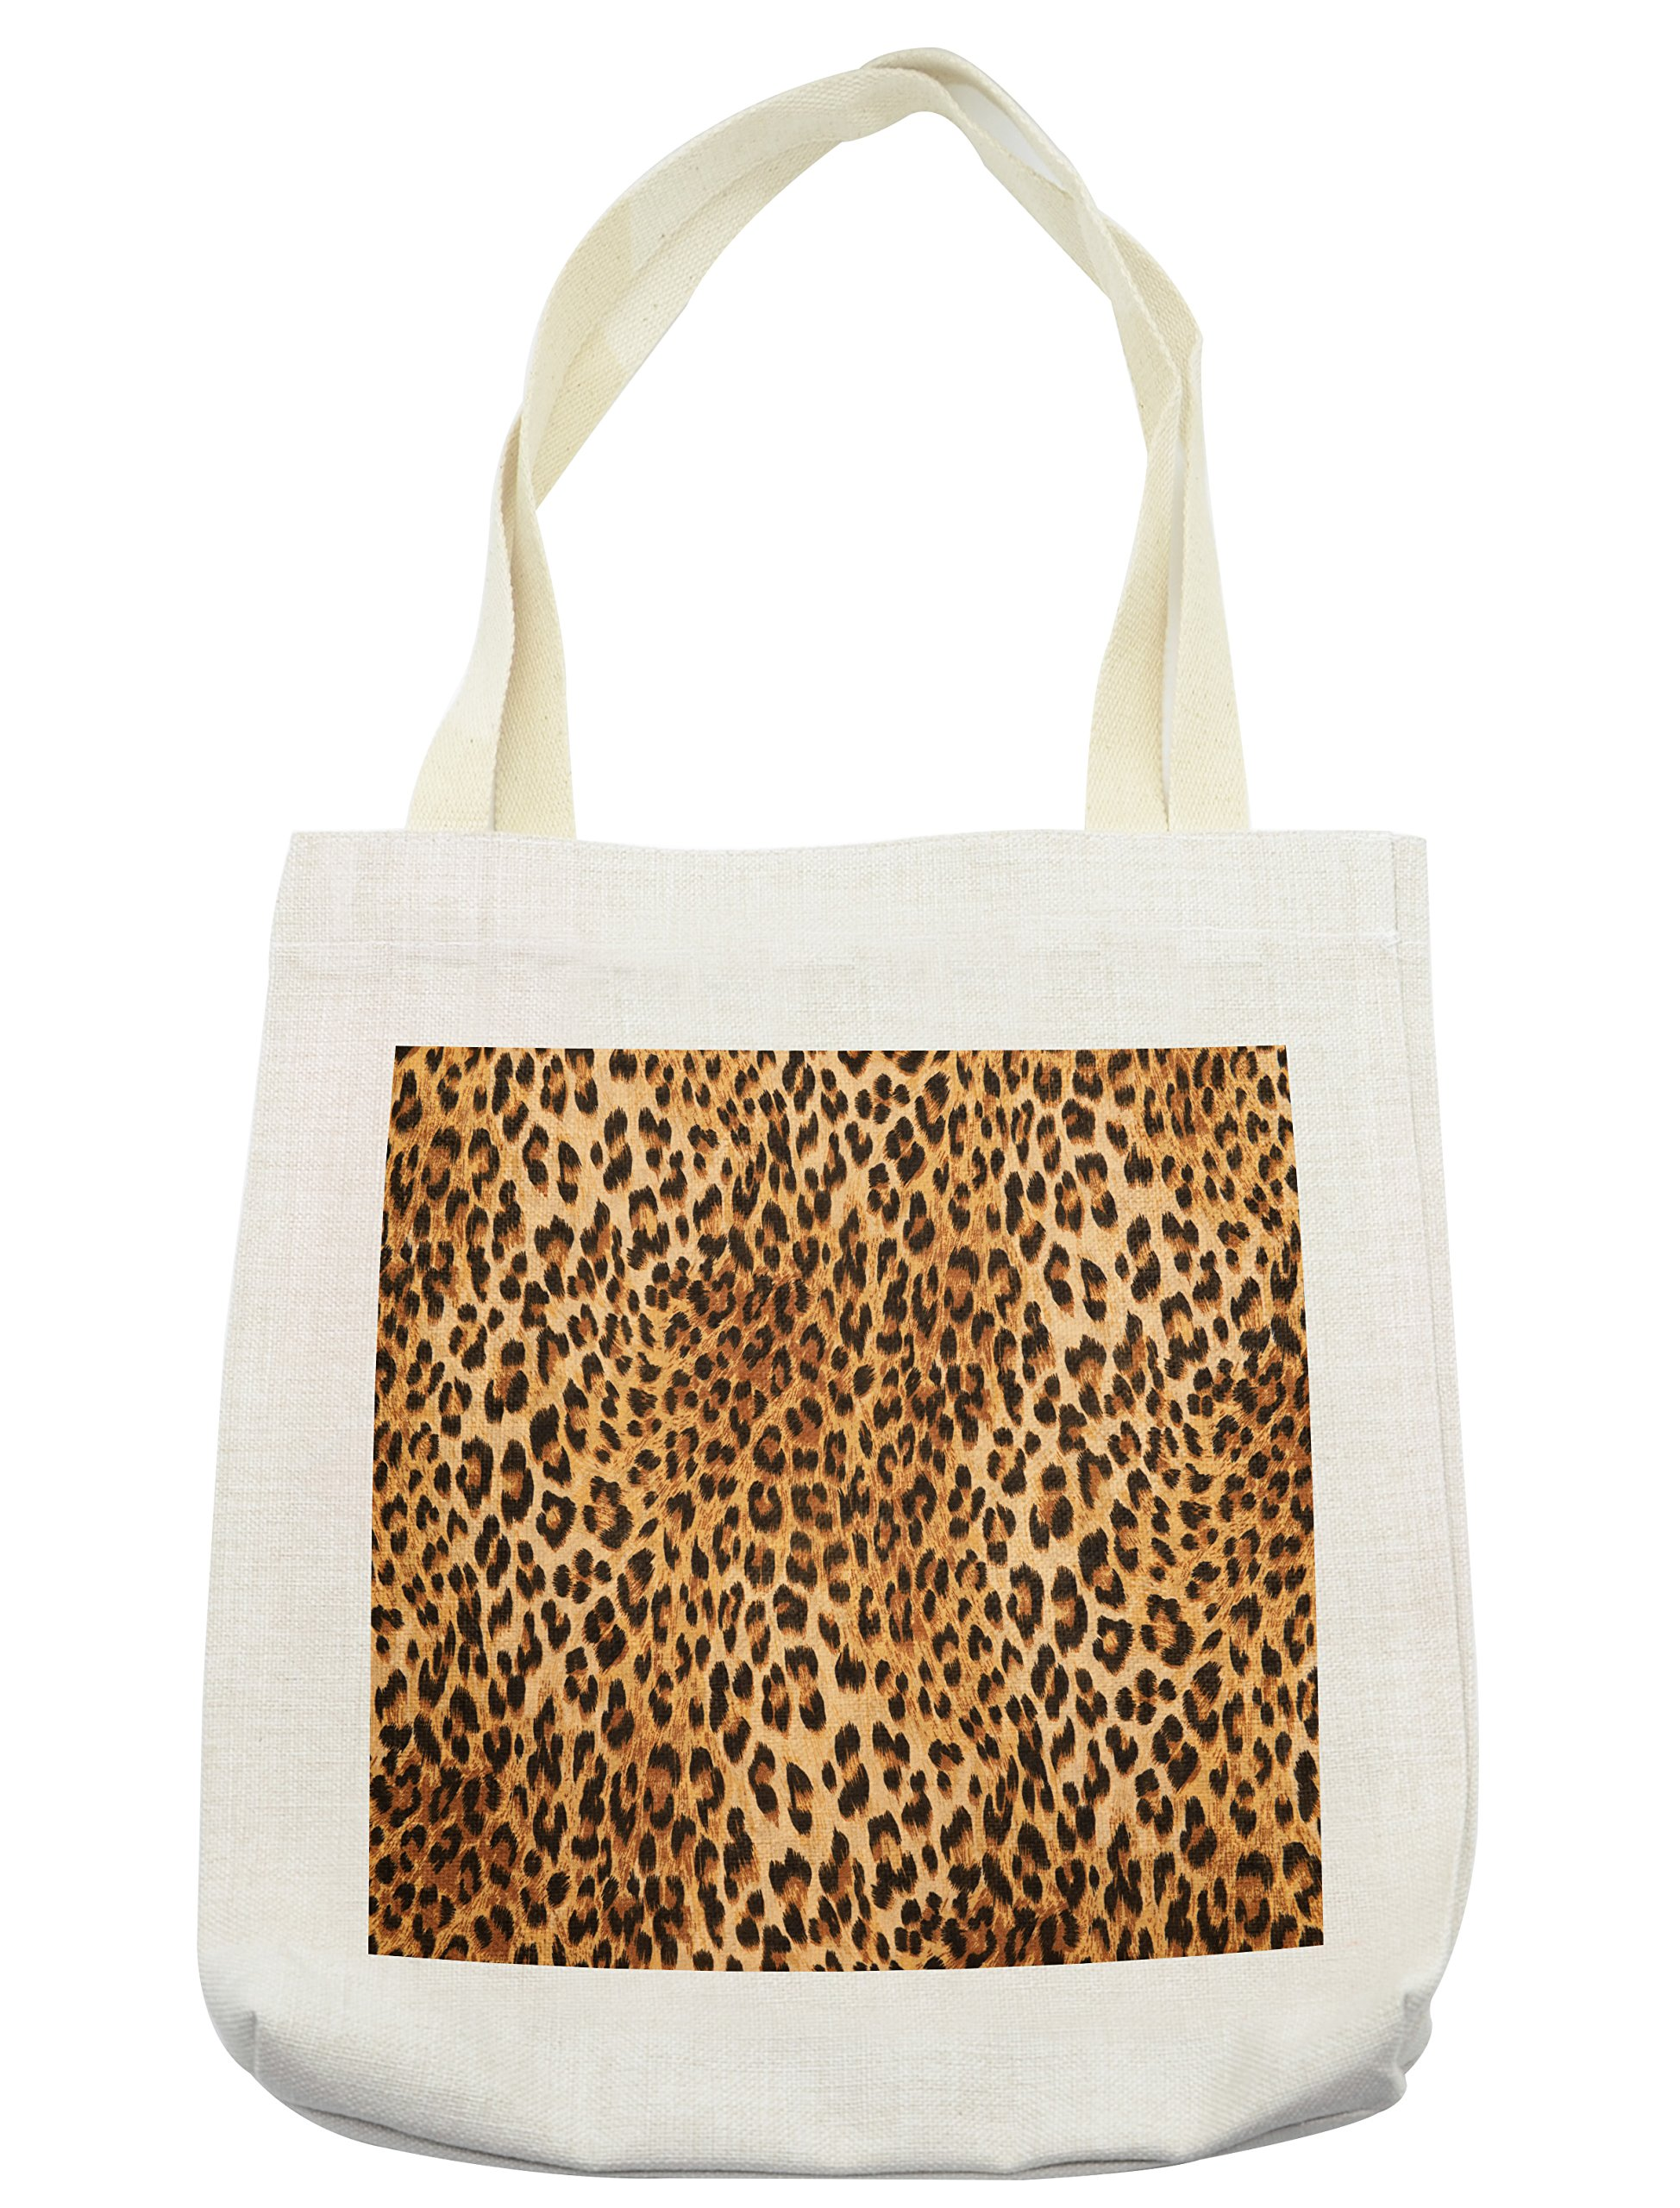 Lunarable Animal Print Tote Bag, Wild Animal Leopard Skin Pattern Wildlife Nature Inspired Modern Illustration, Cloth Linen Reusable Bag for Shopping Groceries Books Beach Travel & More, Cream by Lunarable